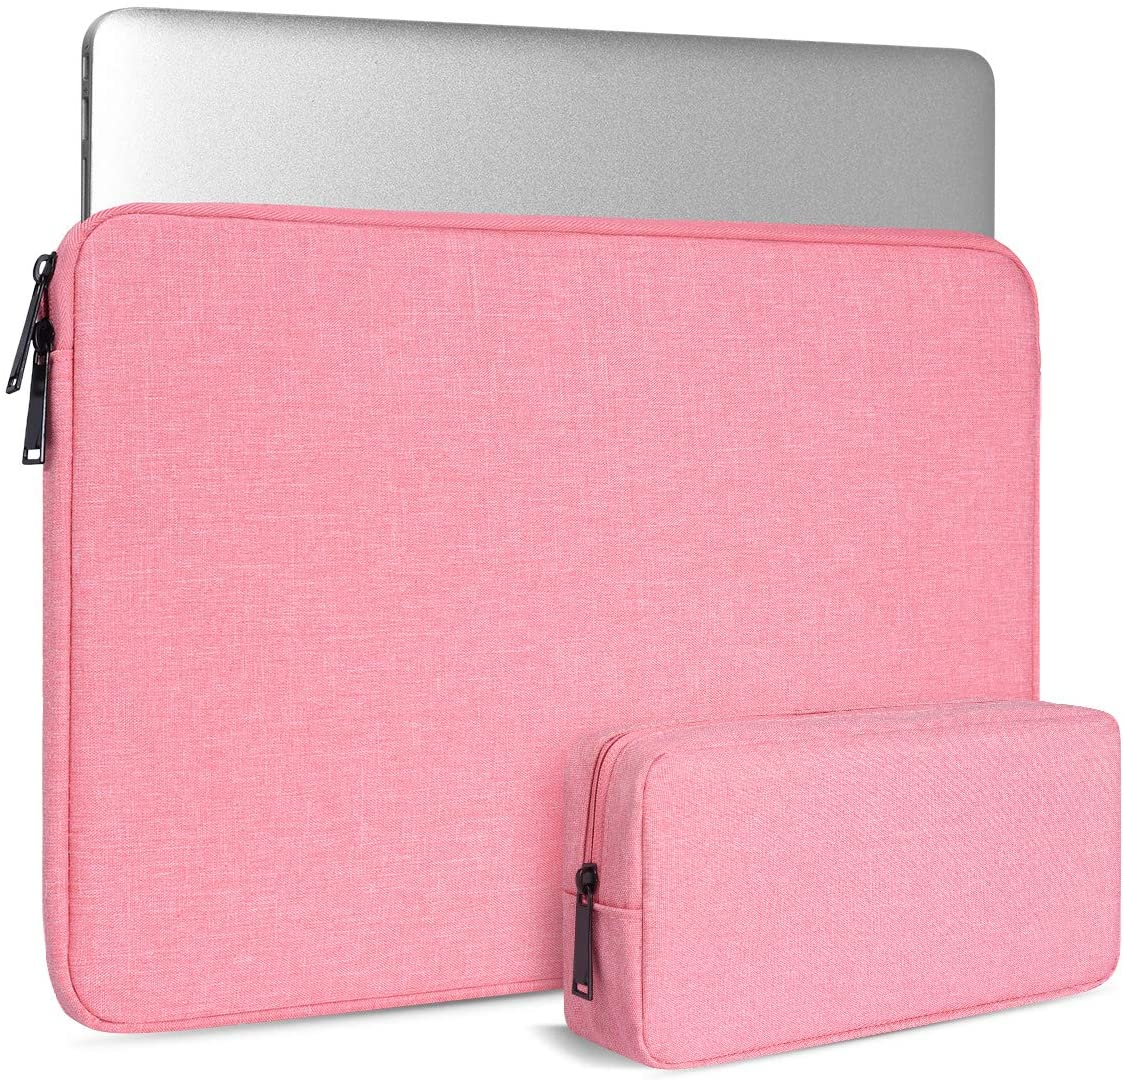 15.6 Inch Laptop Case for Women, Tablet Sleeve for Lenovo IdeaPad 15/Lenovo ThinkPad 15, Lenovo Yoga 730 720 710 C630, Lenovo Flex 5, Dell HP Asus Acer Chromebook with Small Case, Pink